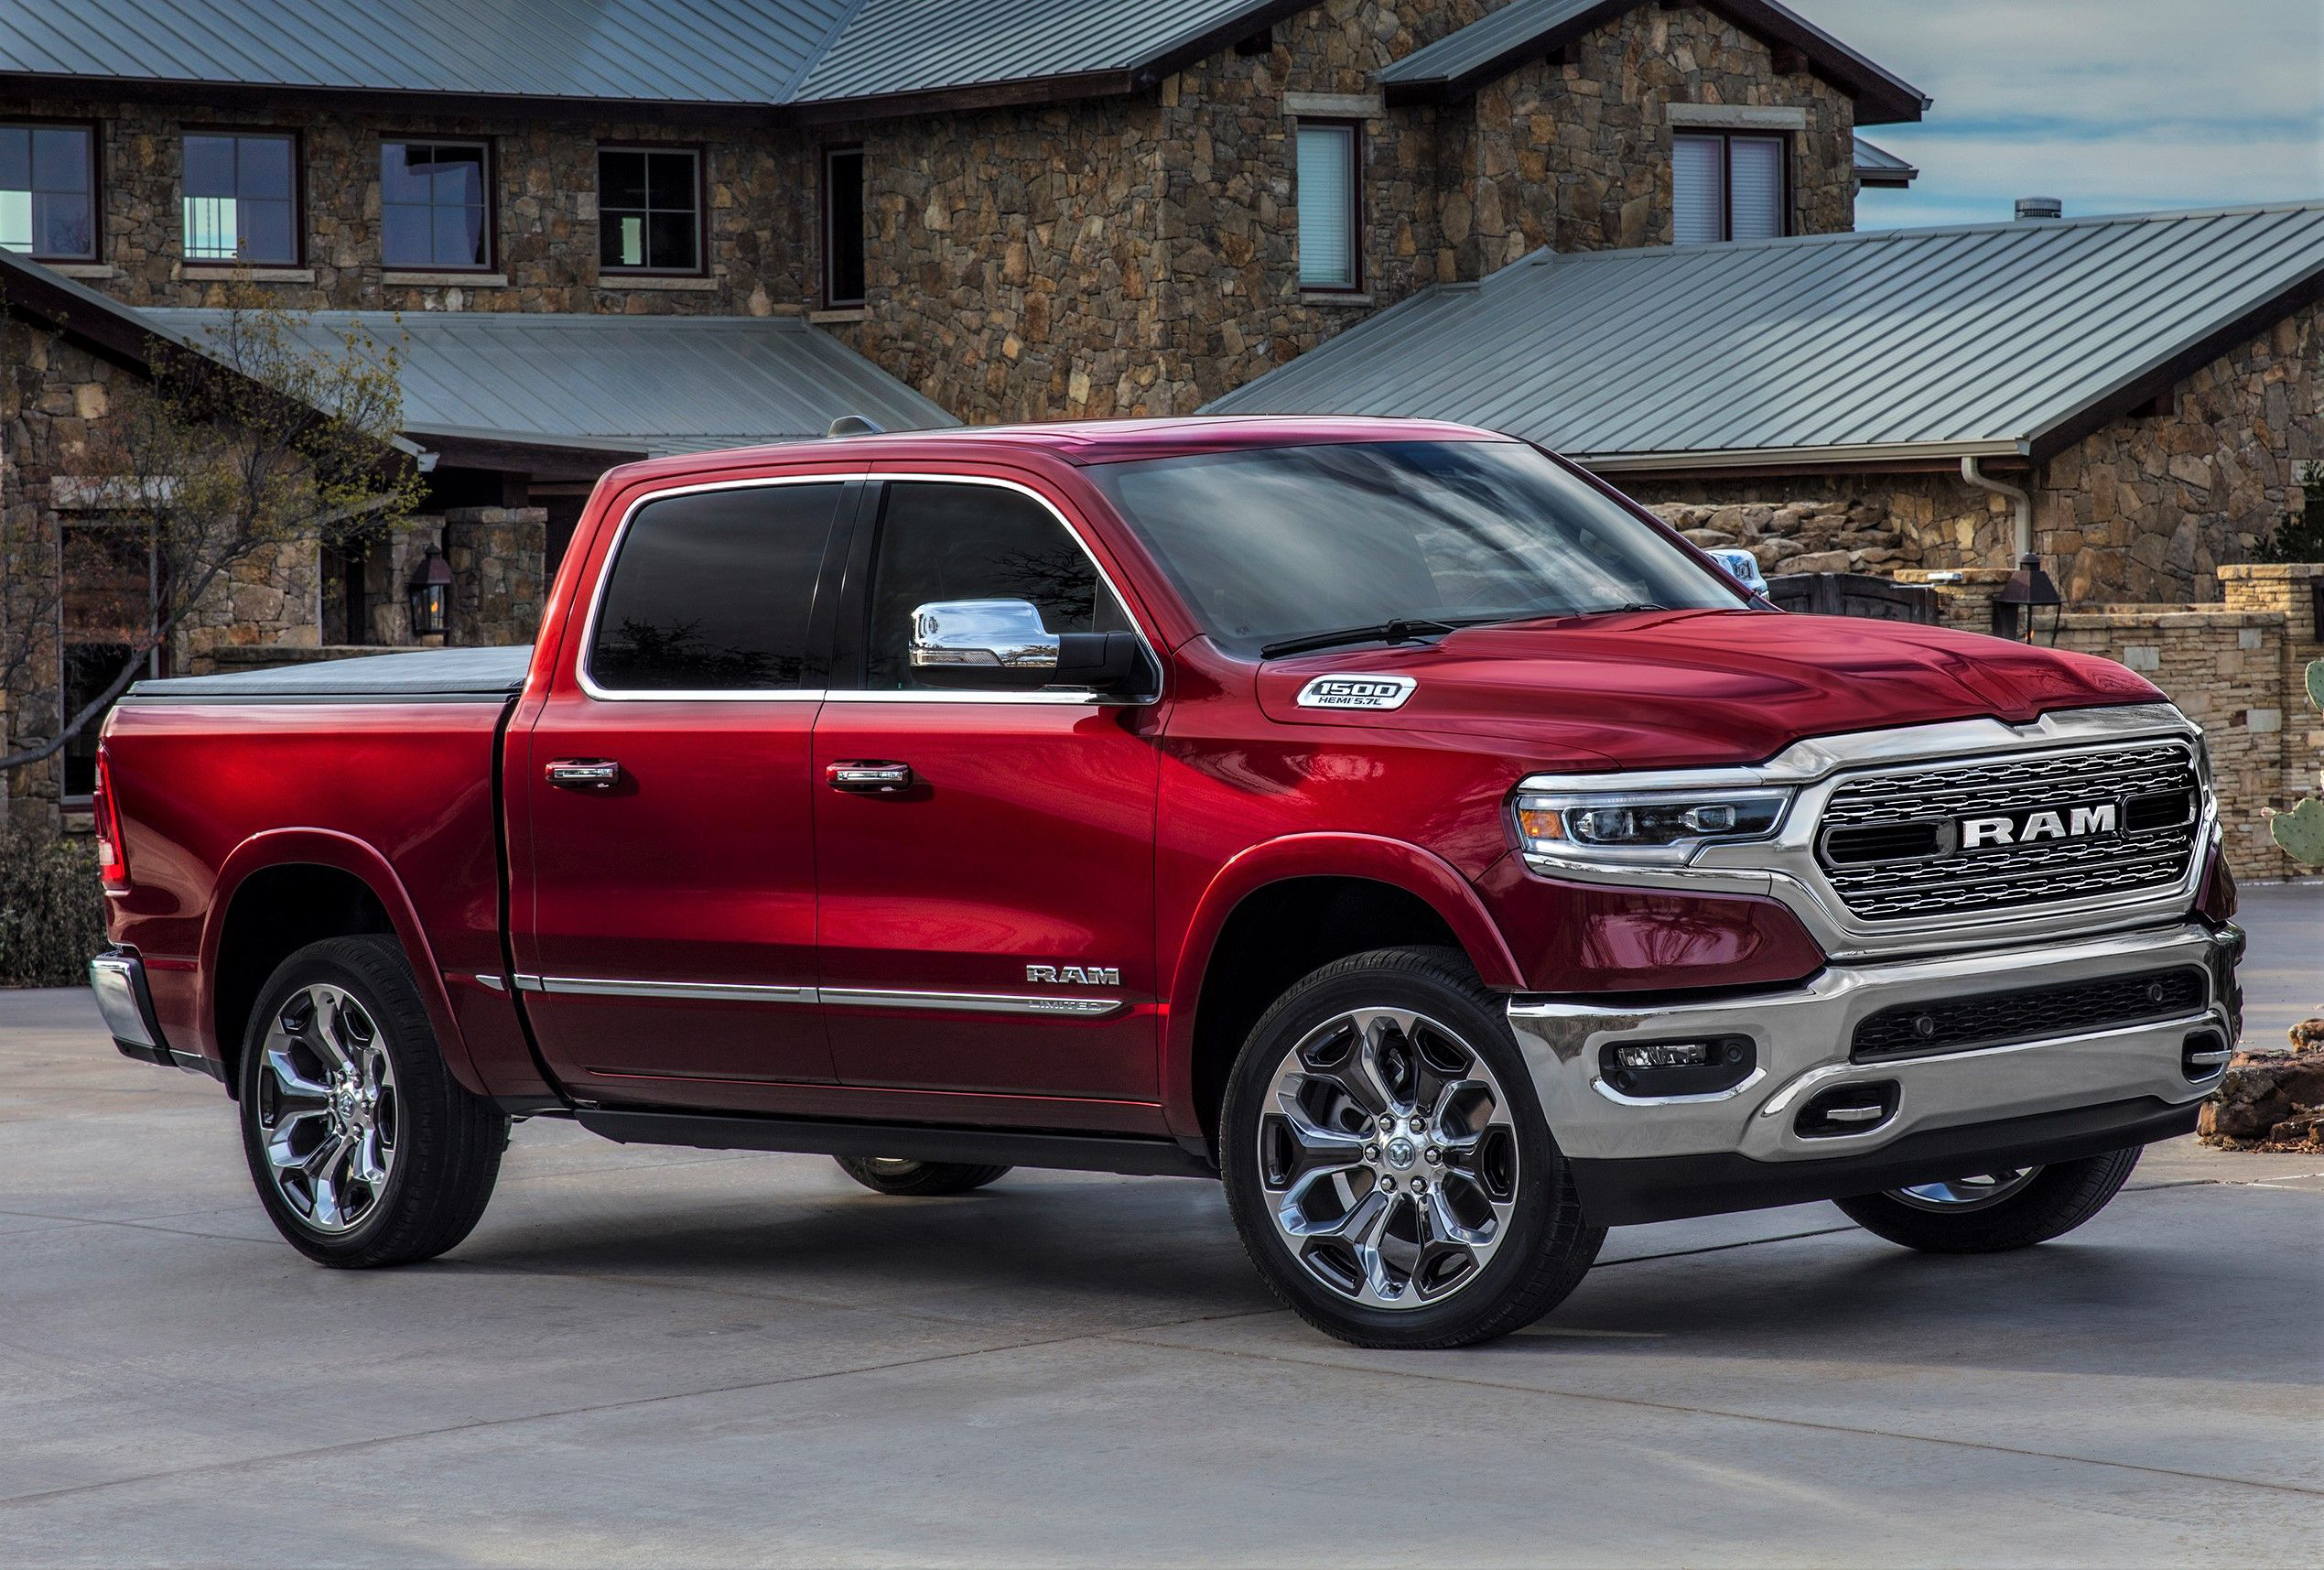 ram unveils redesigned 2019 1500 trucks with new look less weight more tech equipment world. Black Bedroom Furniture Sets. Home Design Ideas